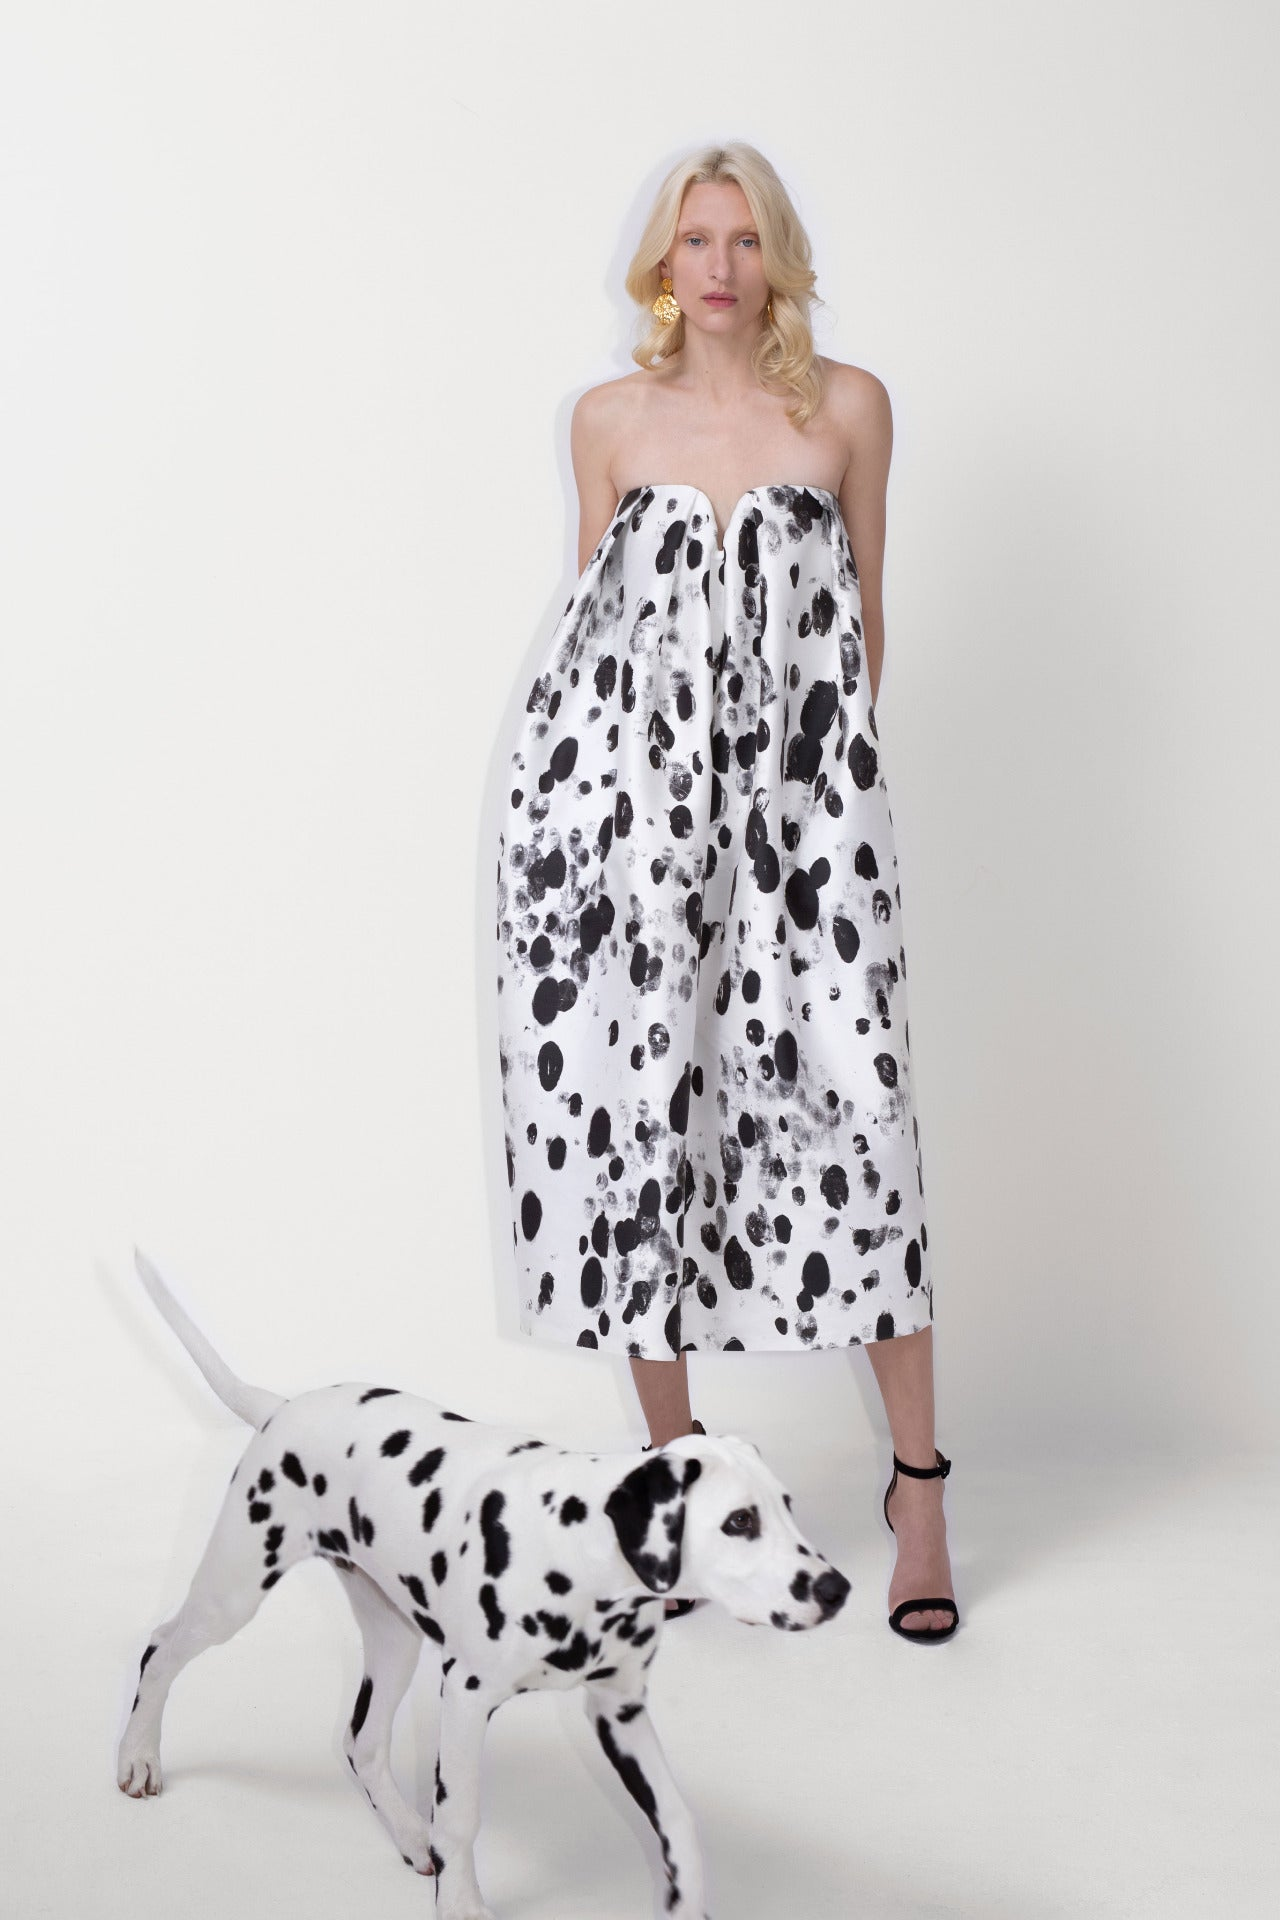 ESCADA Fall/Winter 2020 White dalmatian strapless dress